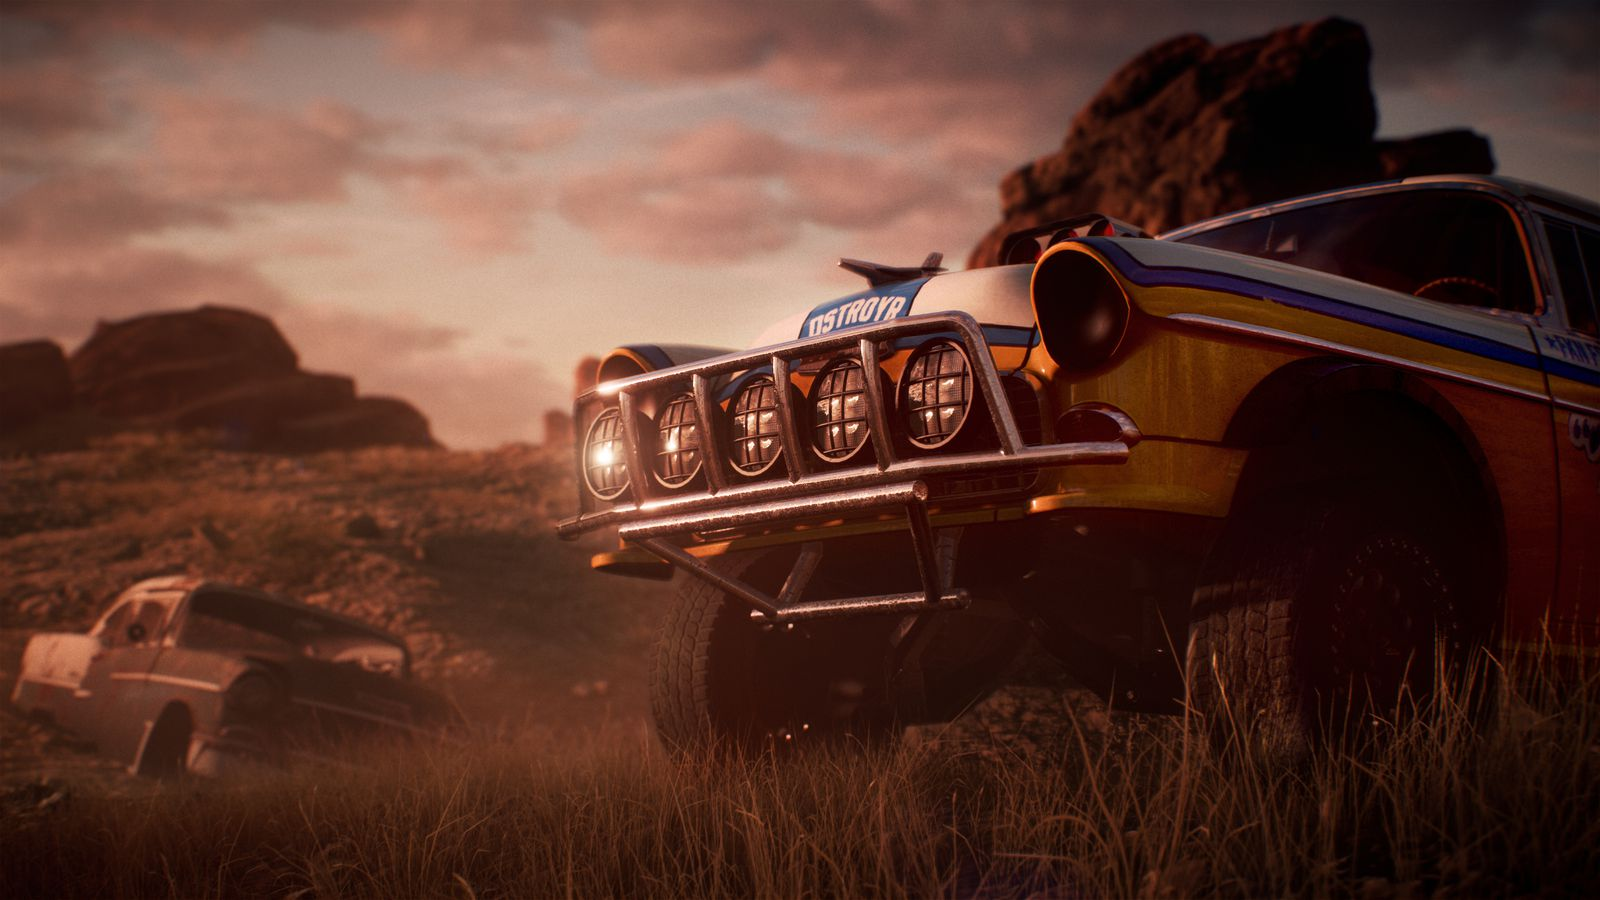 Need For Speed Payback Brings Off-Road Racing And Heist Missions To EA's Series This November